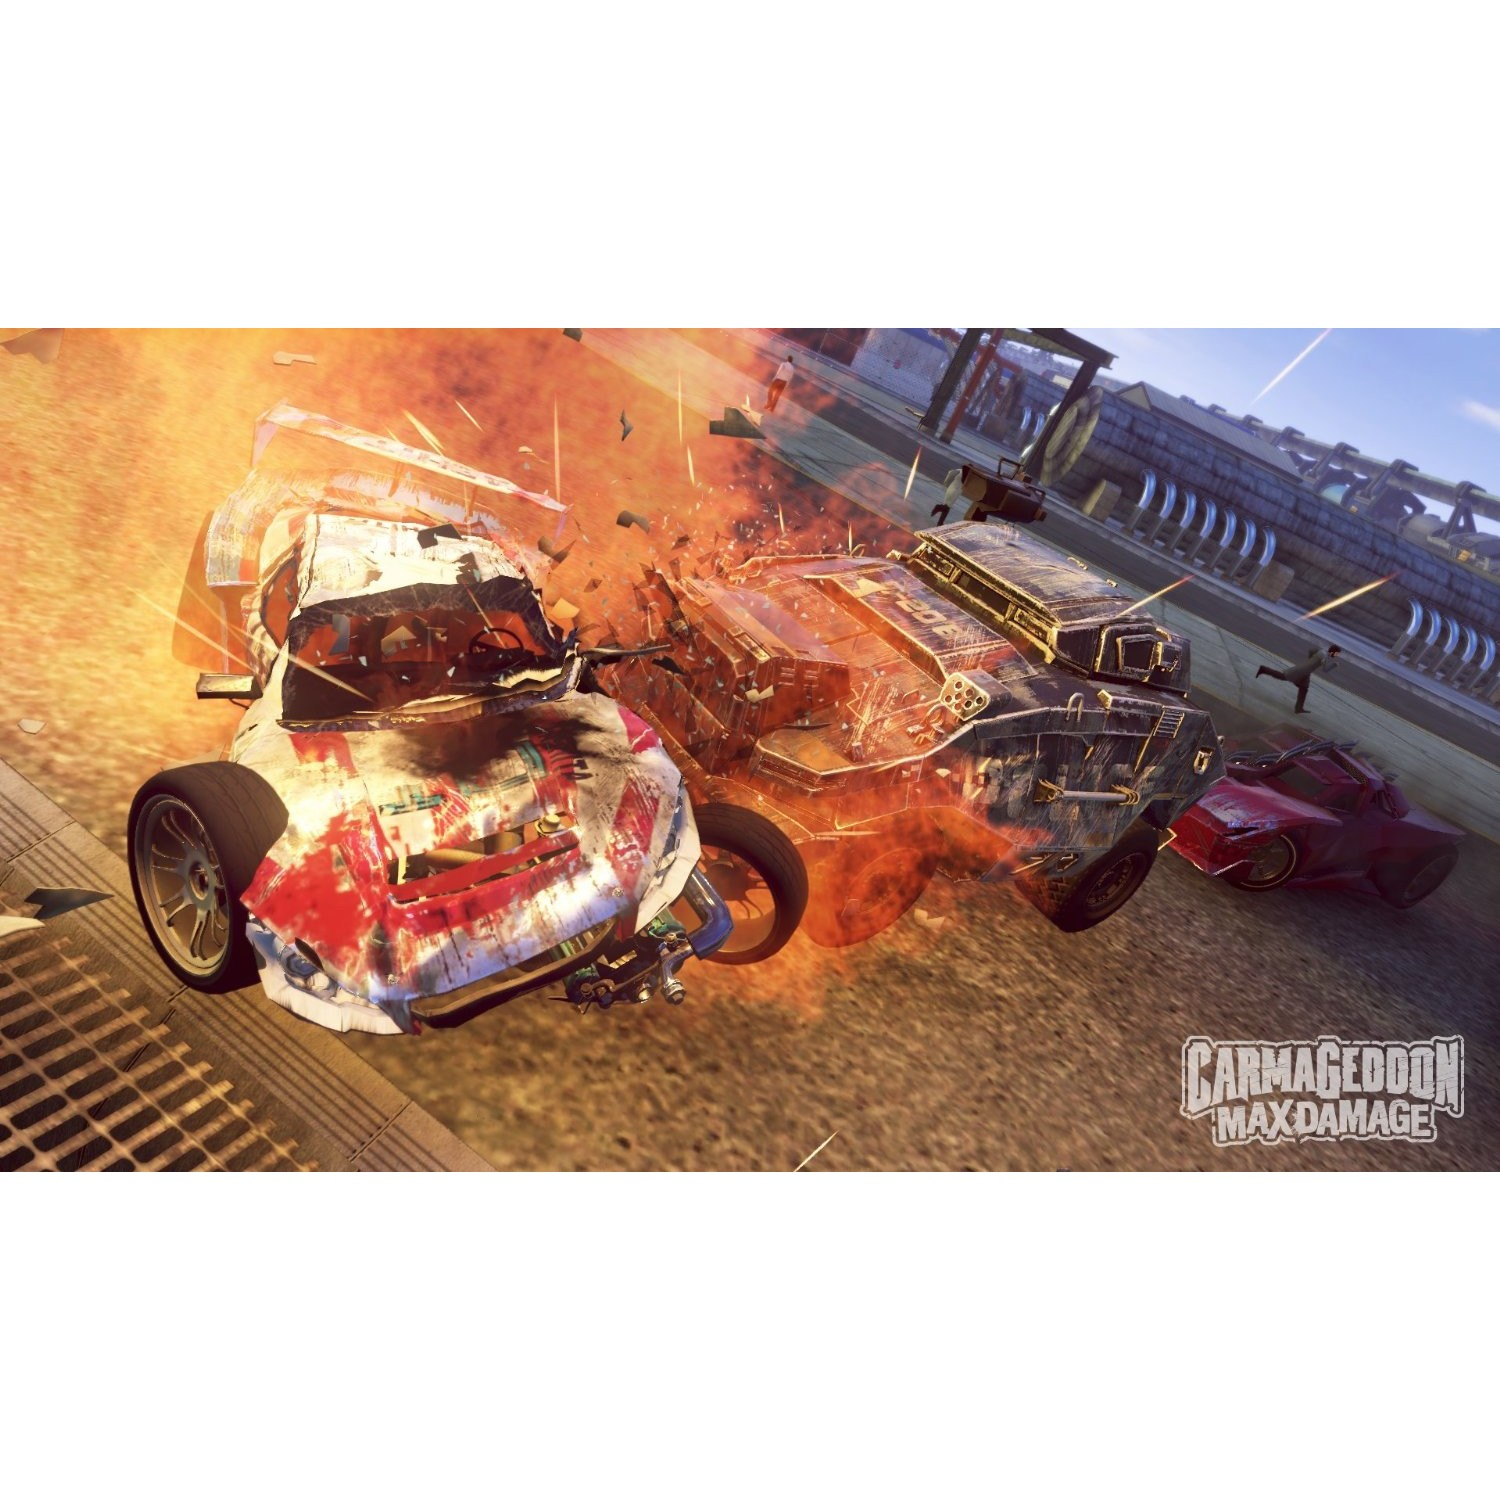 Joc Carmageddon: Max Damage Ps4 5